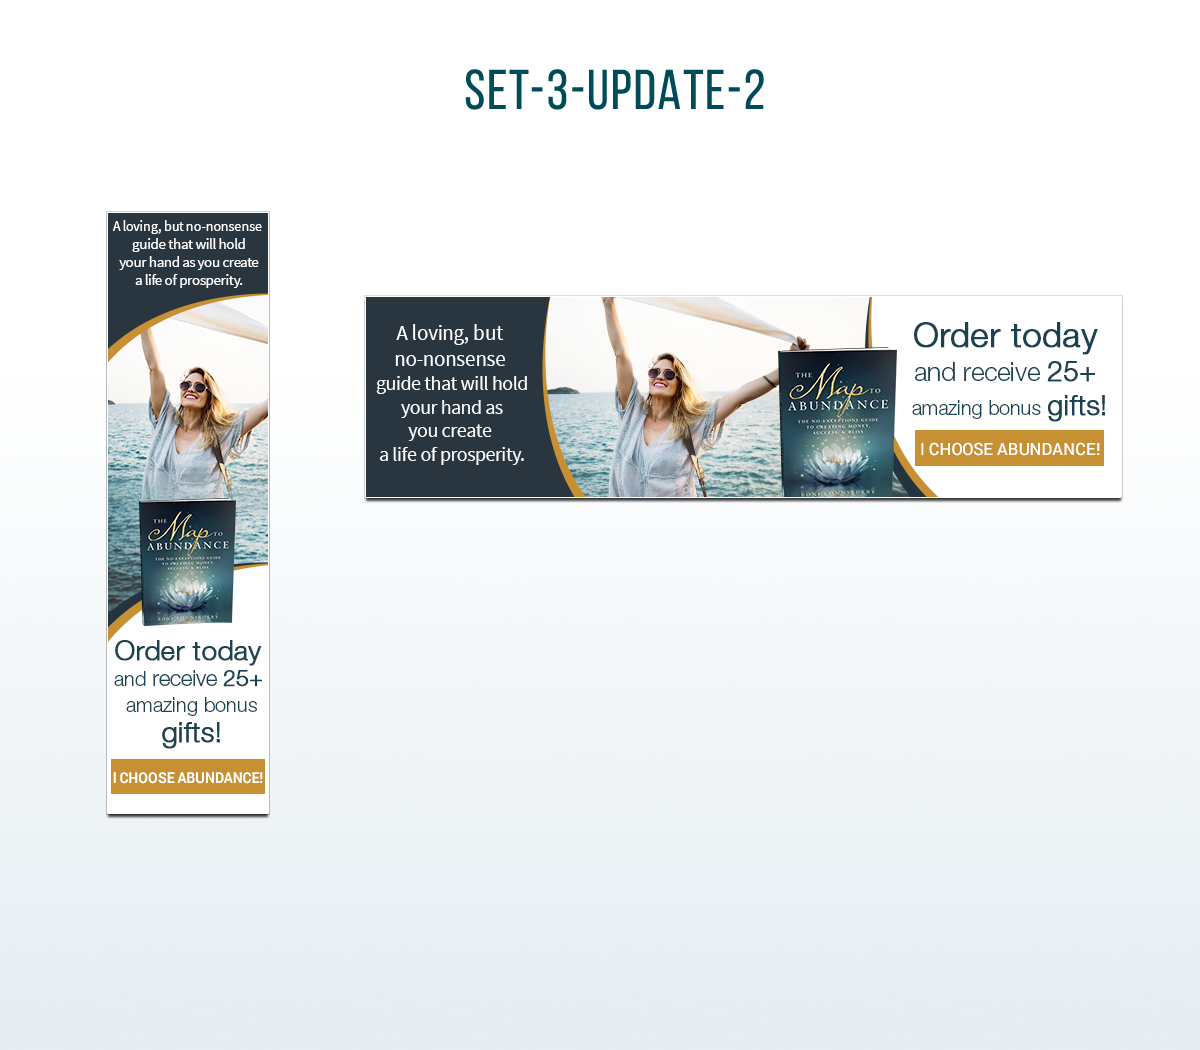 Banner ads for The Map to Abundance Book Launch